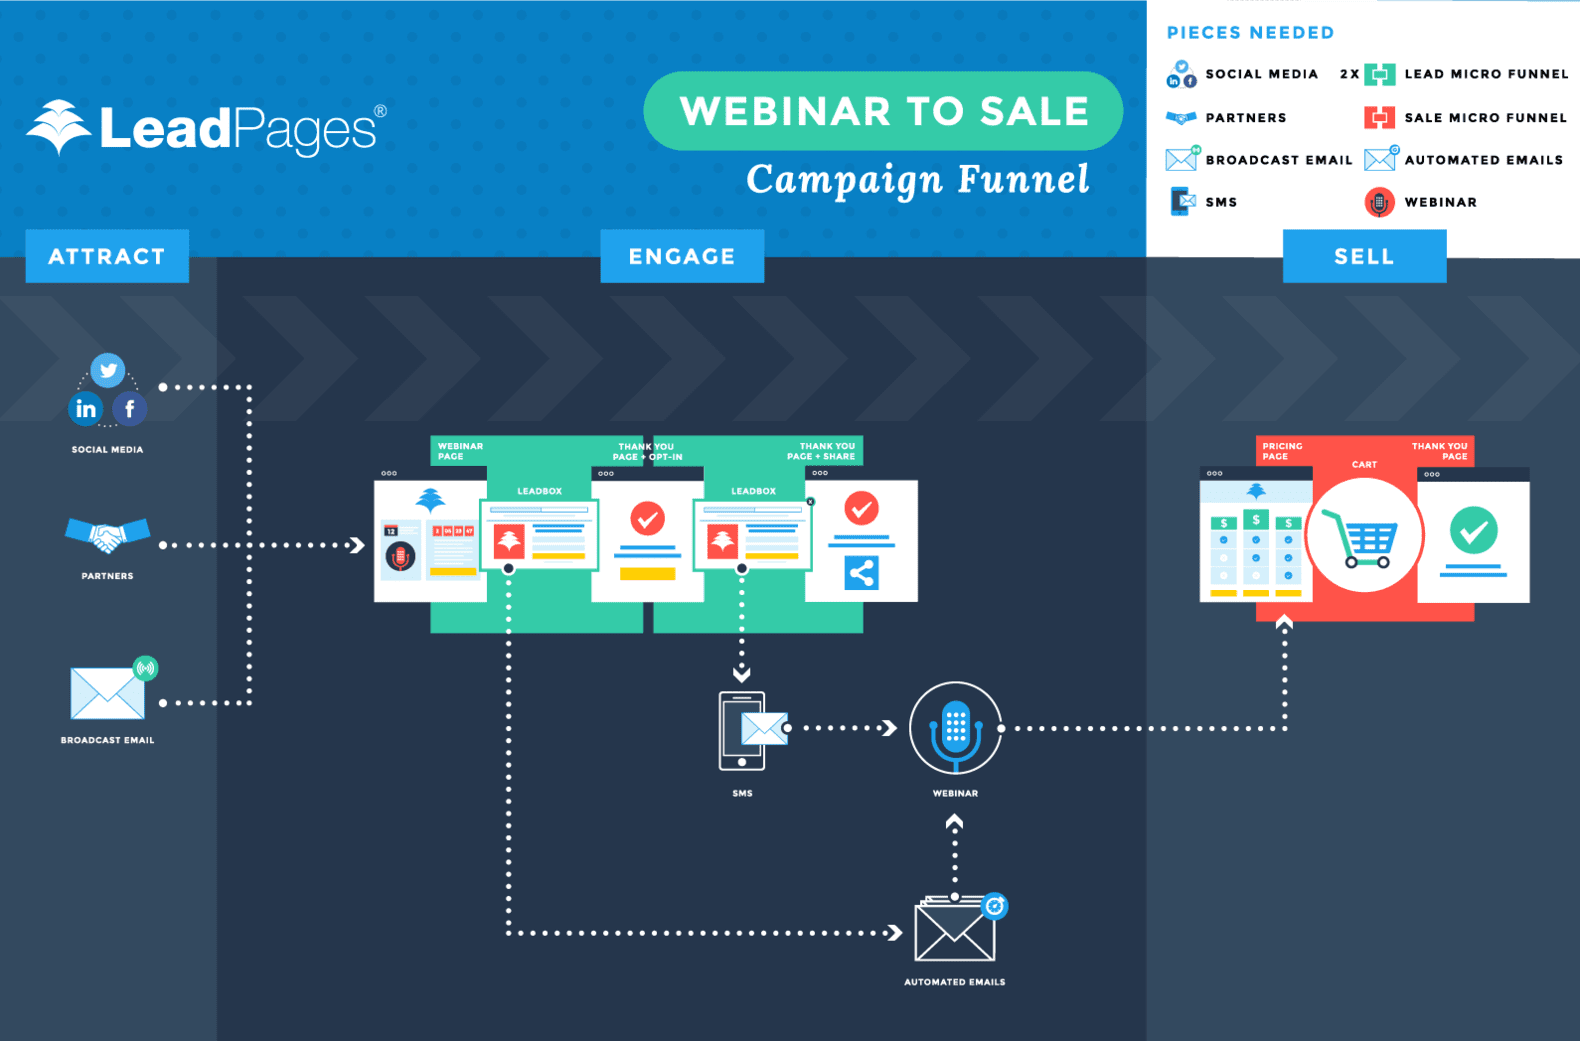 Webinar to Sale Campaign Funnel